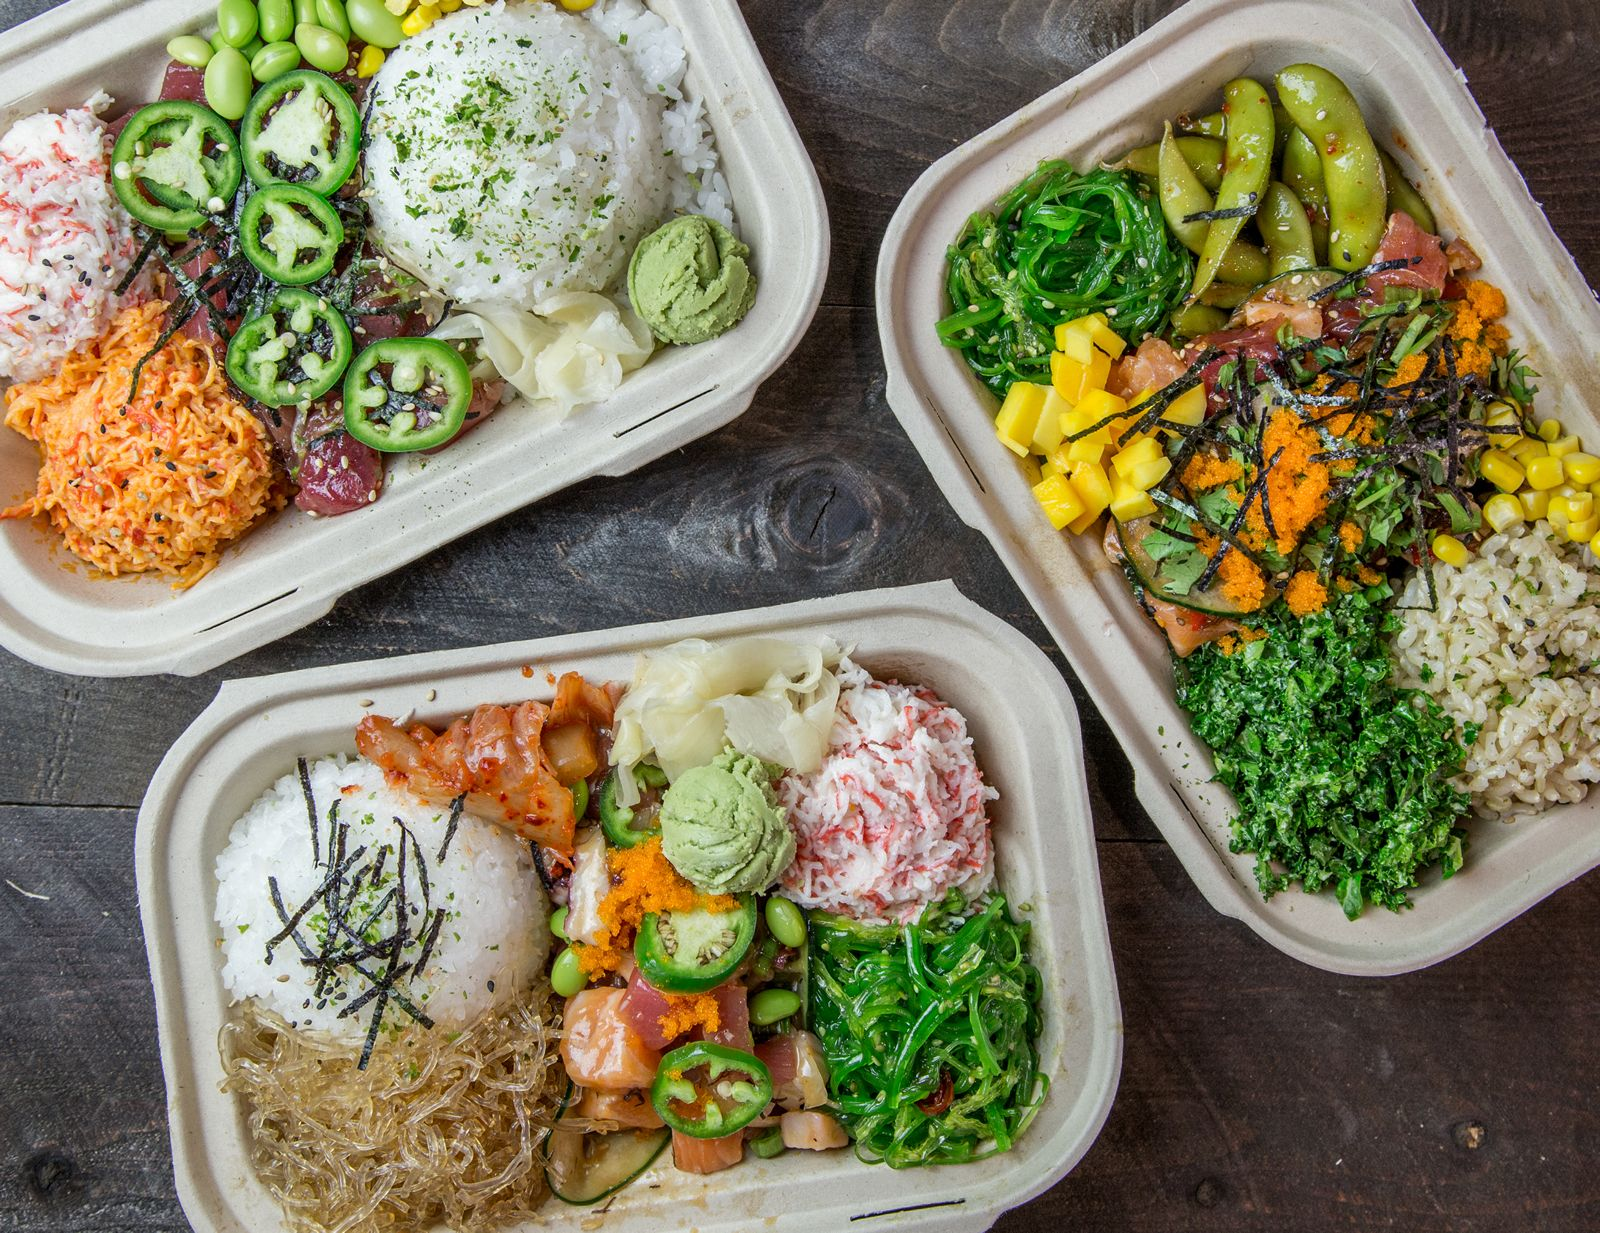 Pokeatery to Open First Franchised Location in Walnut Creek